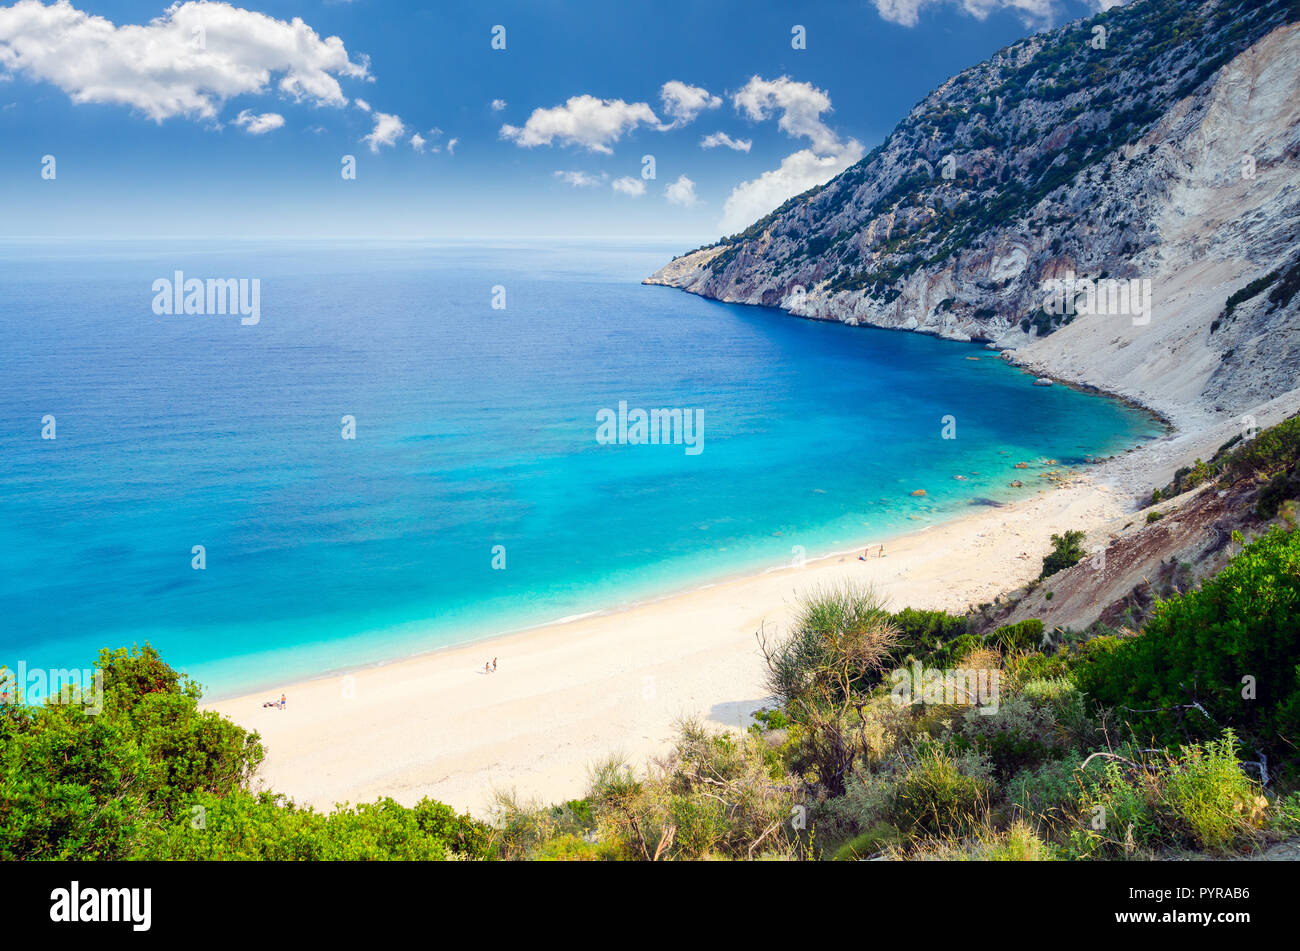 Myrtos beach, Kefalonia island, Greece. Beautiful view of Myrtos bay and beach on Kefalonia island - Stock Image